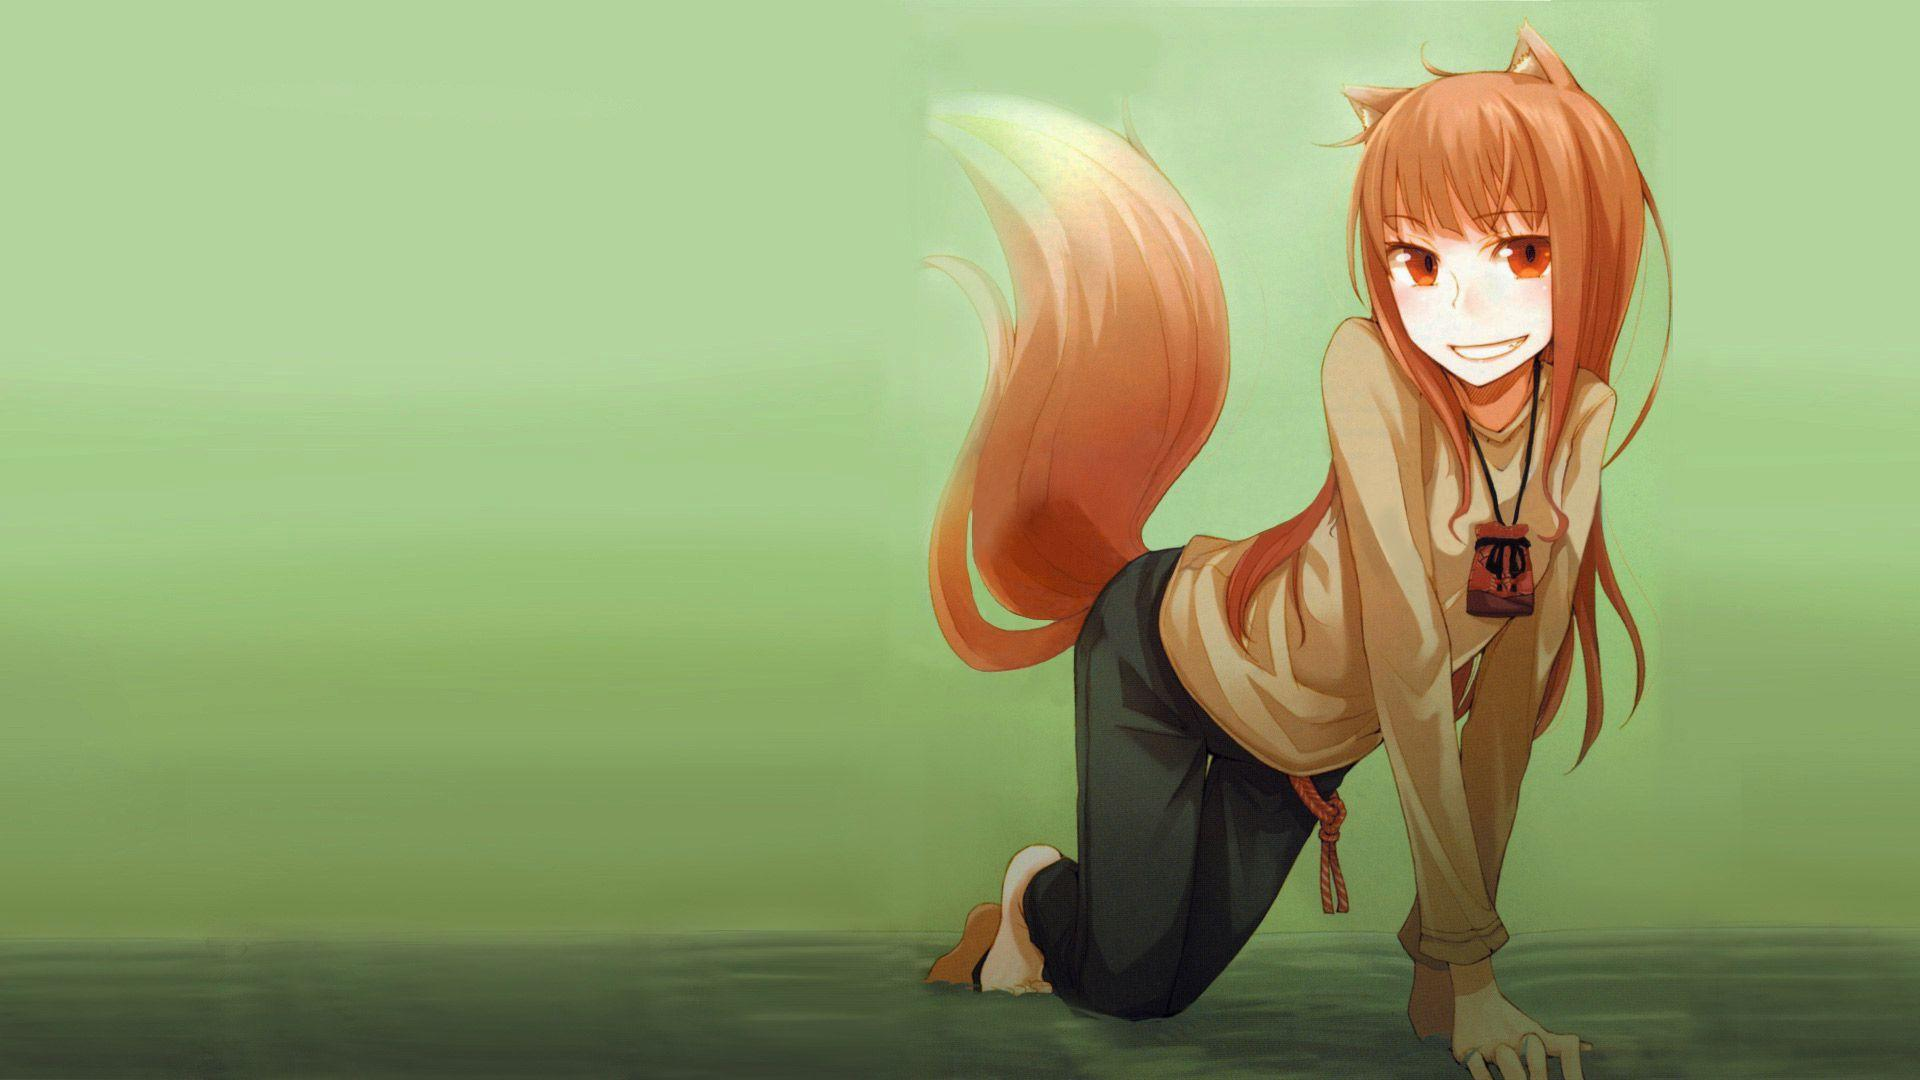 Wallpaper anime space Spice and Wolf boy girl screenshot